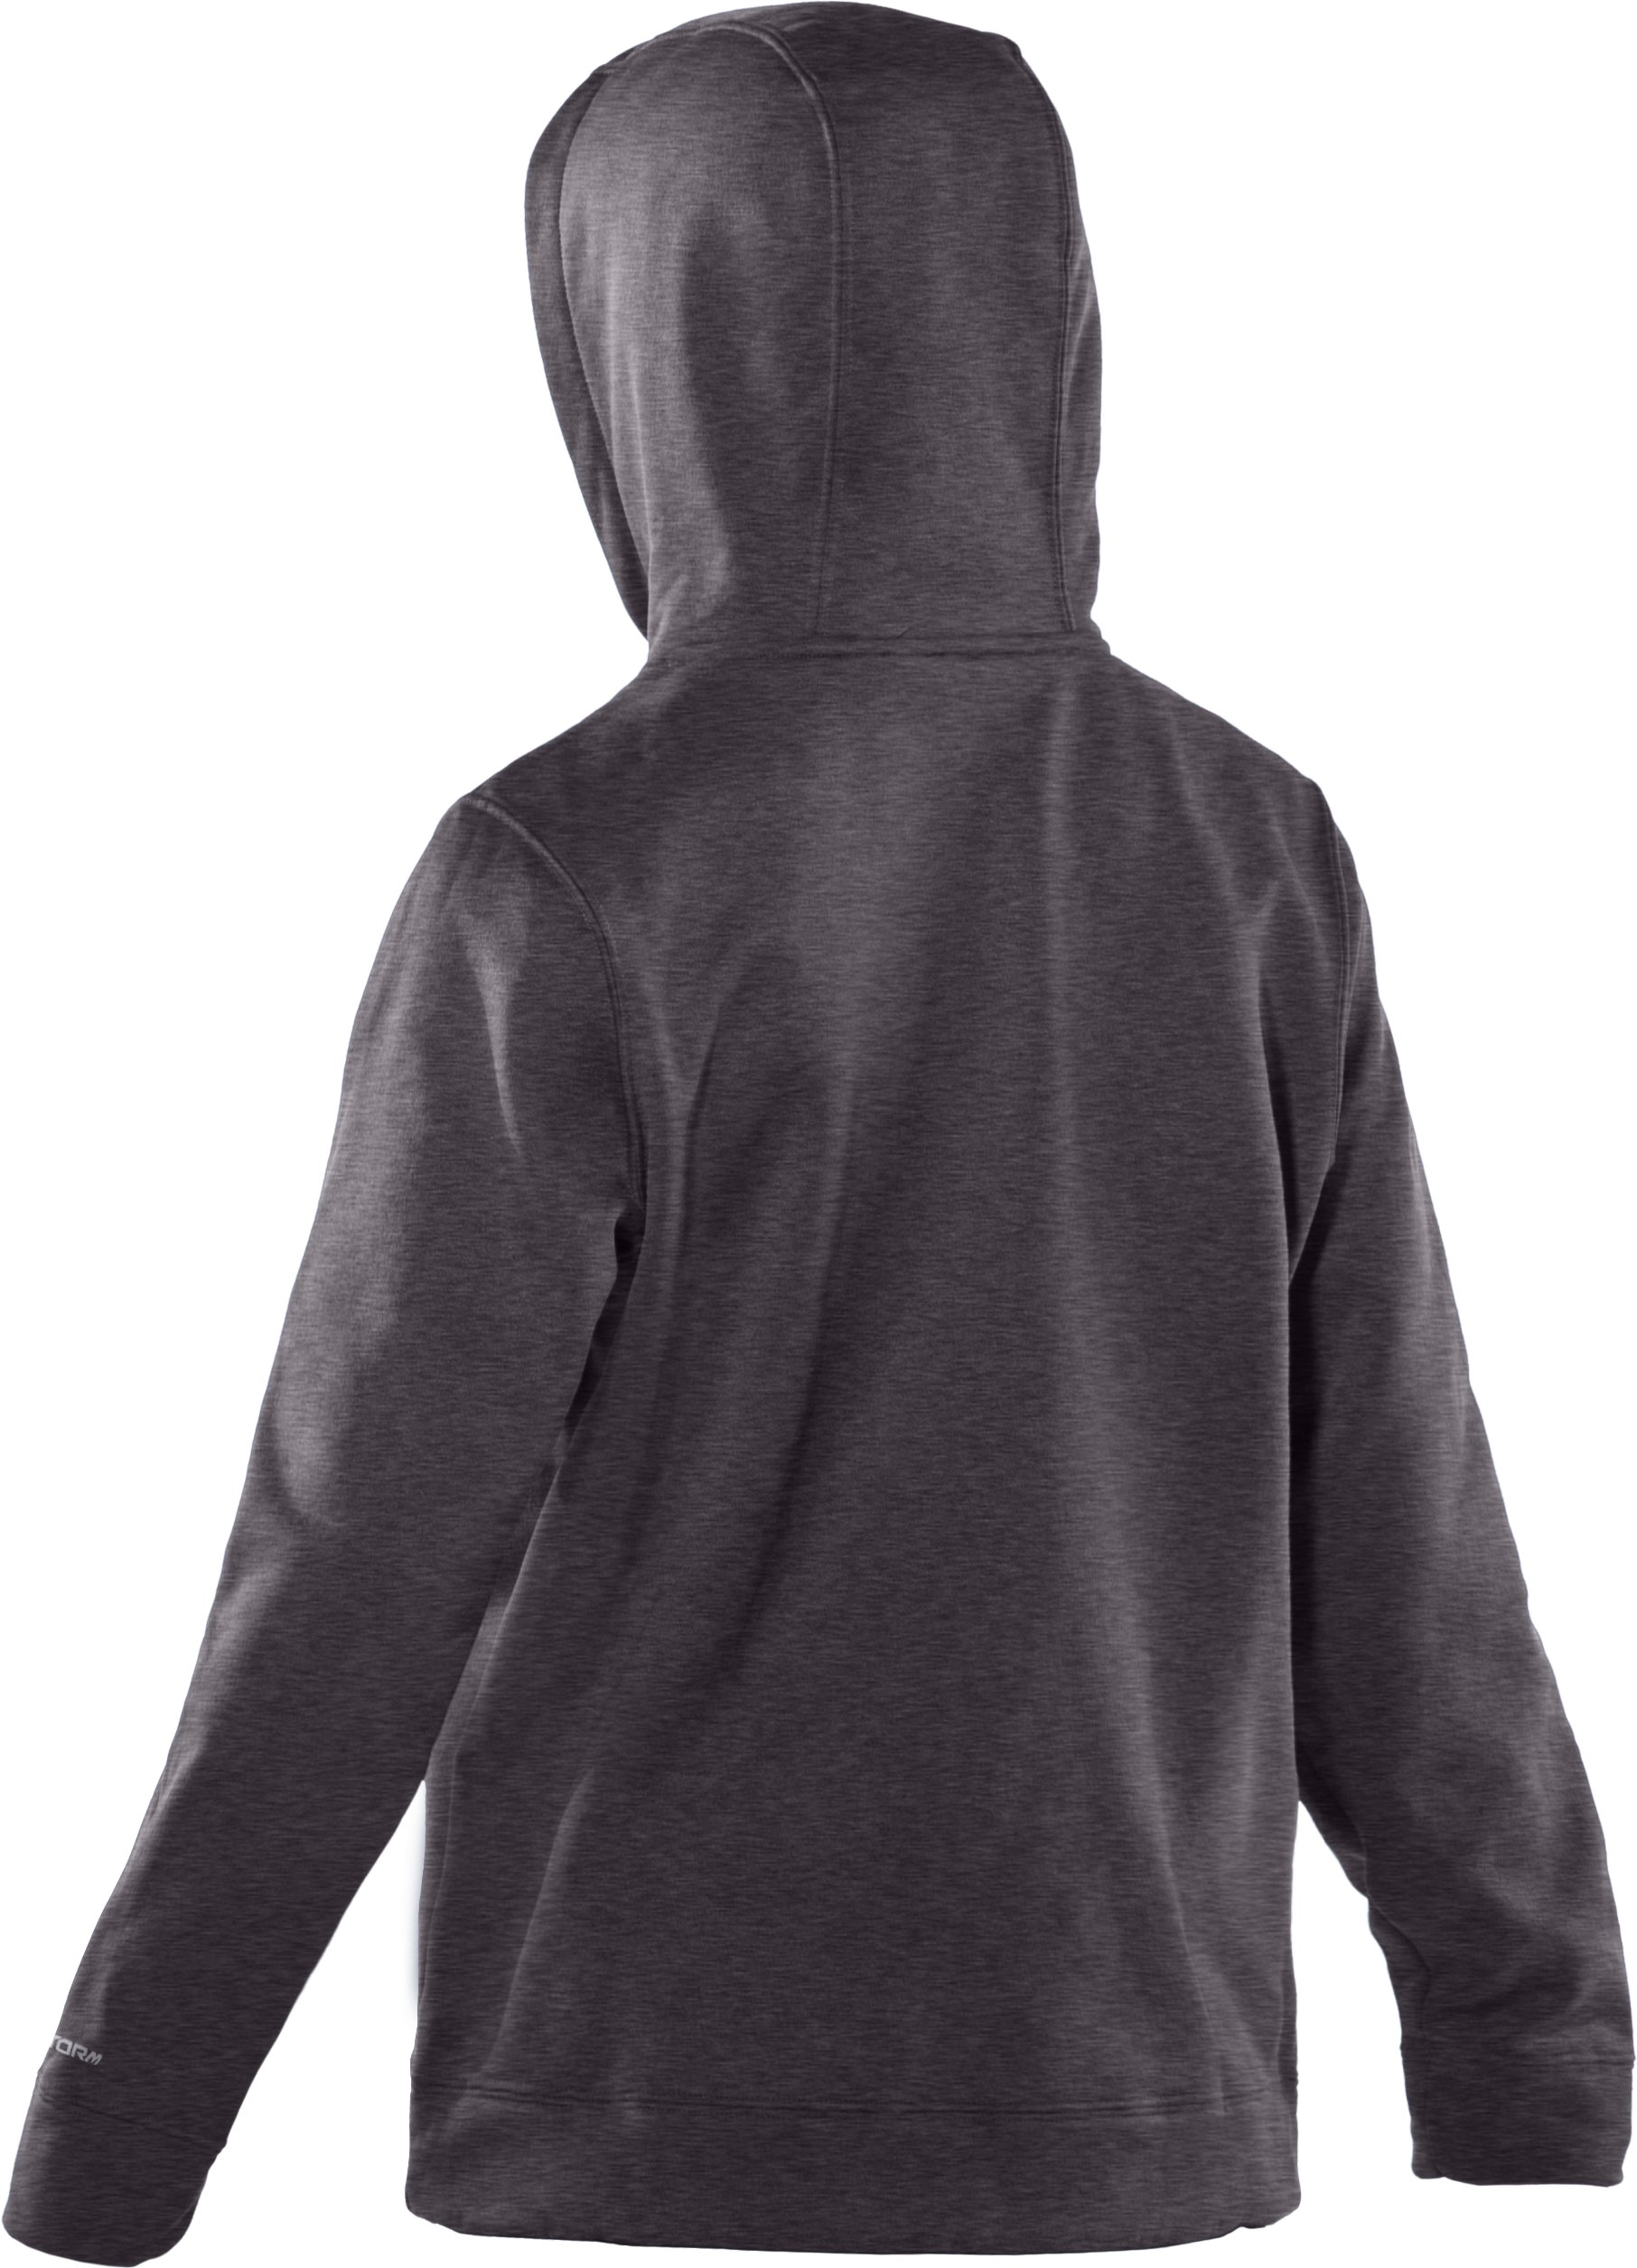 Boys' Armour® Fleece Storm Big Logo Pullover Hoodie, Carbon Heather